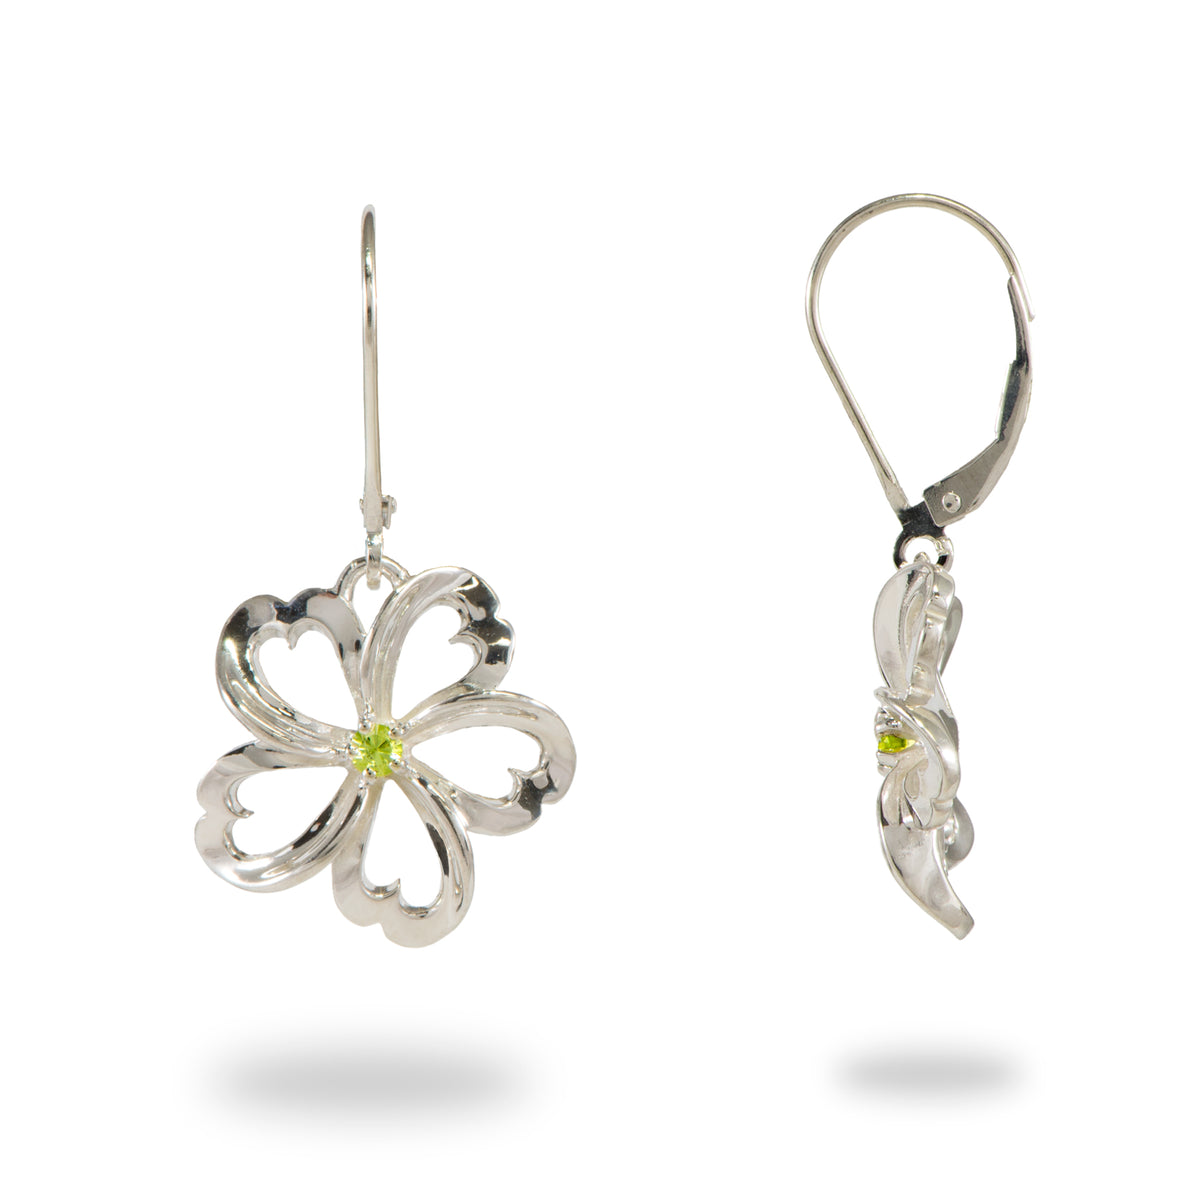 Plumeria Peridot Earrings in Sterling Silver - 18mm